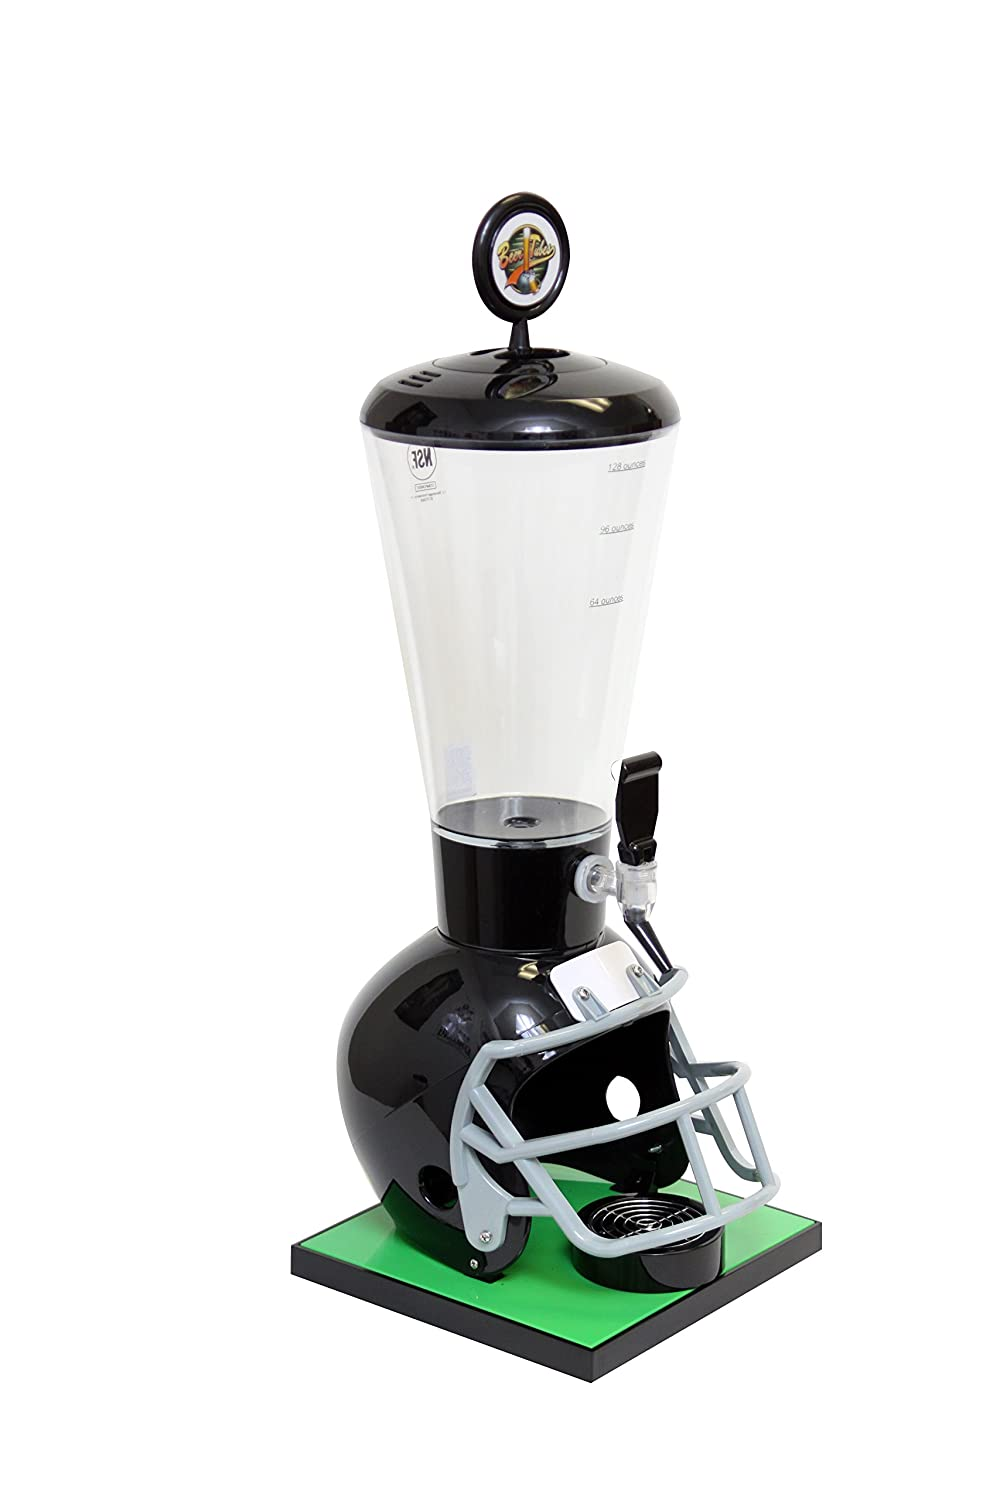 Beer Tubes Black Football Helmet Beverage Tower Dispenser with Regular Tap, 128 oz. Super Tube, FBK-ST-R